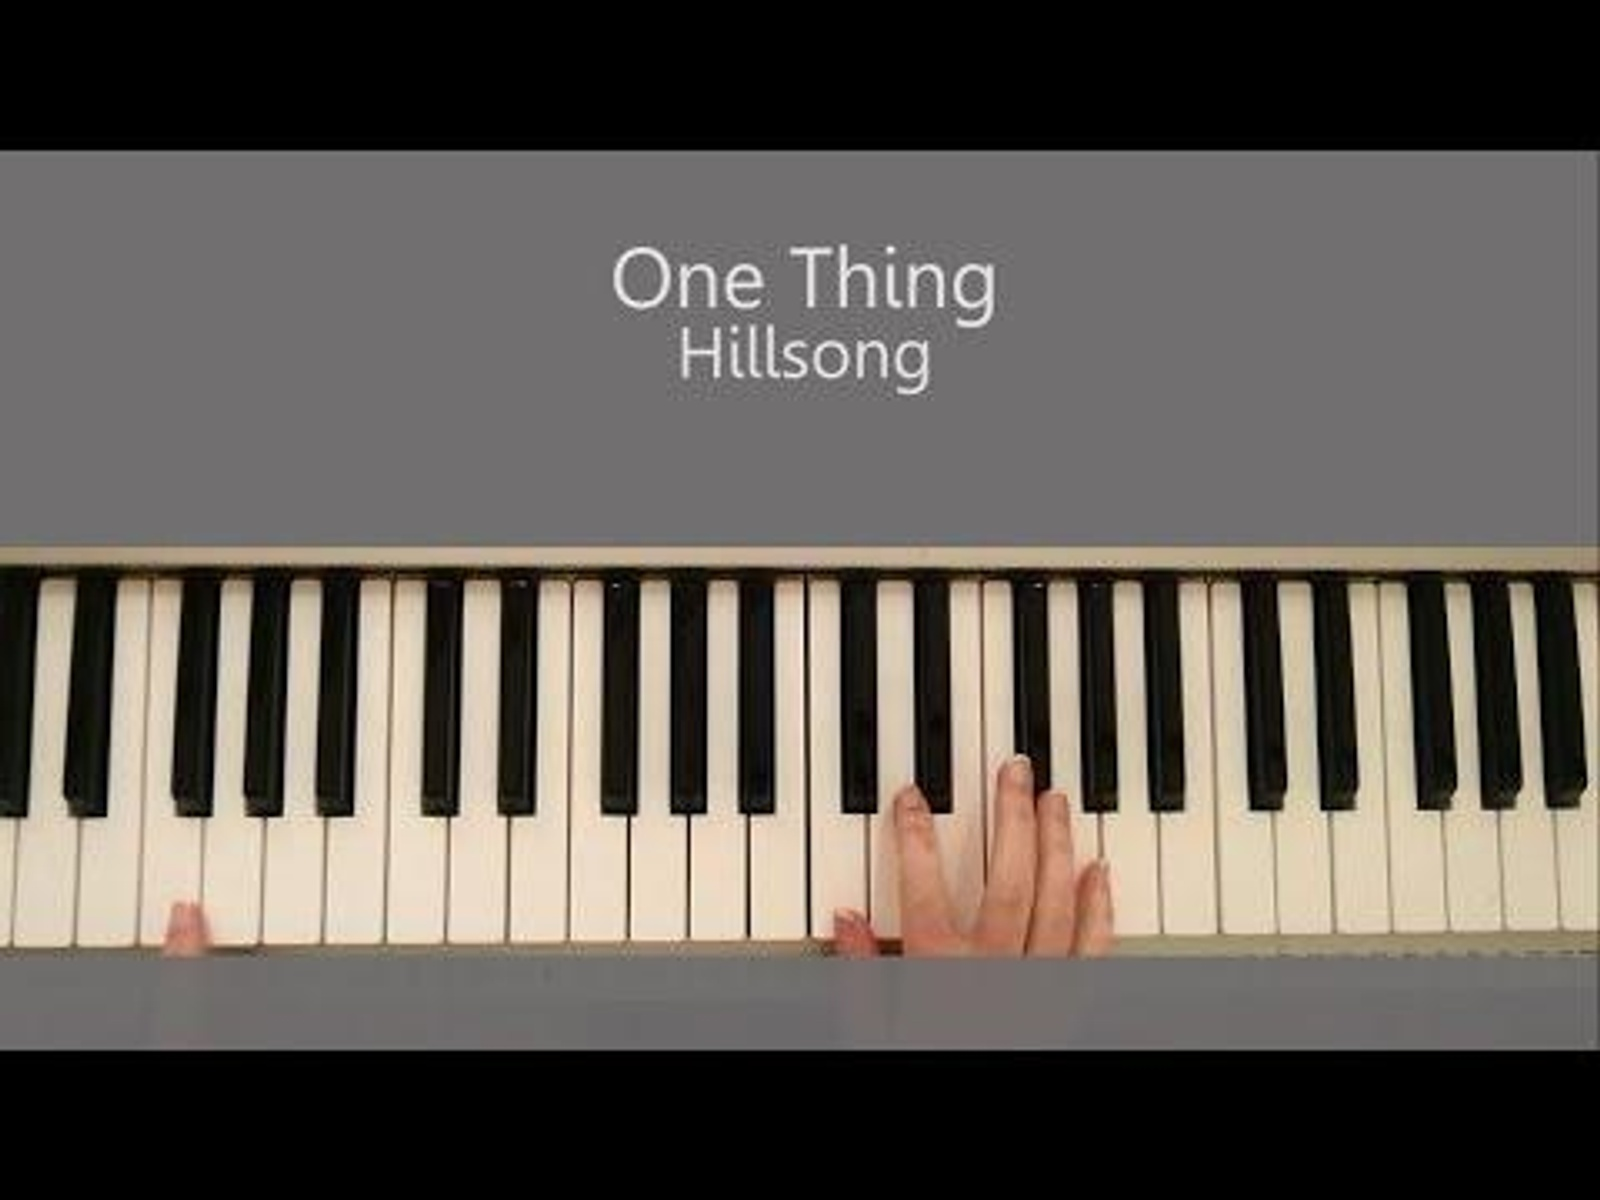 One thing hillsong piano tutorial and chords nina nevski on one thing hillsong piano tutorial and chords hexwebz Images